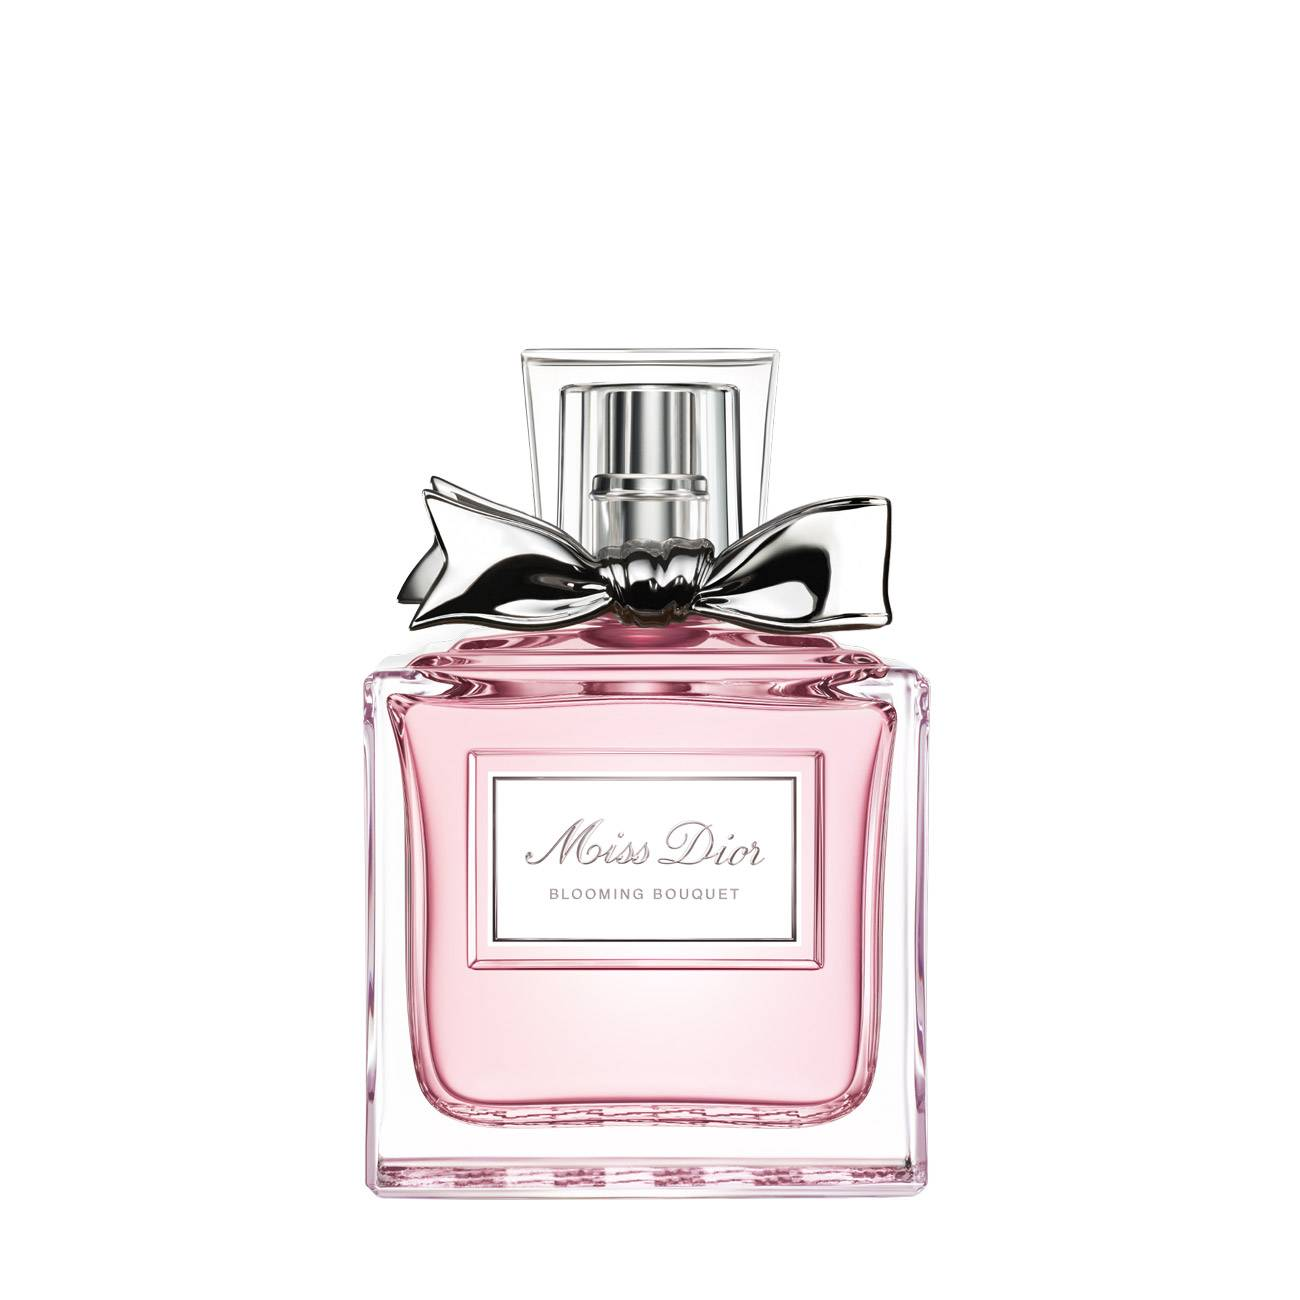 MISS BLOOMING BOUQUET 50ml